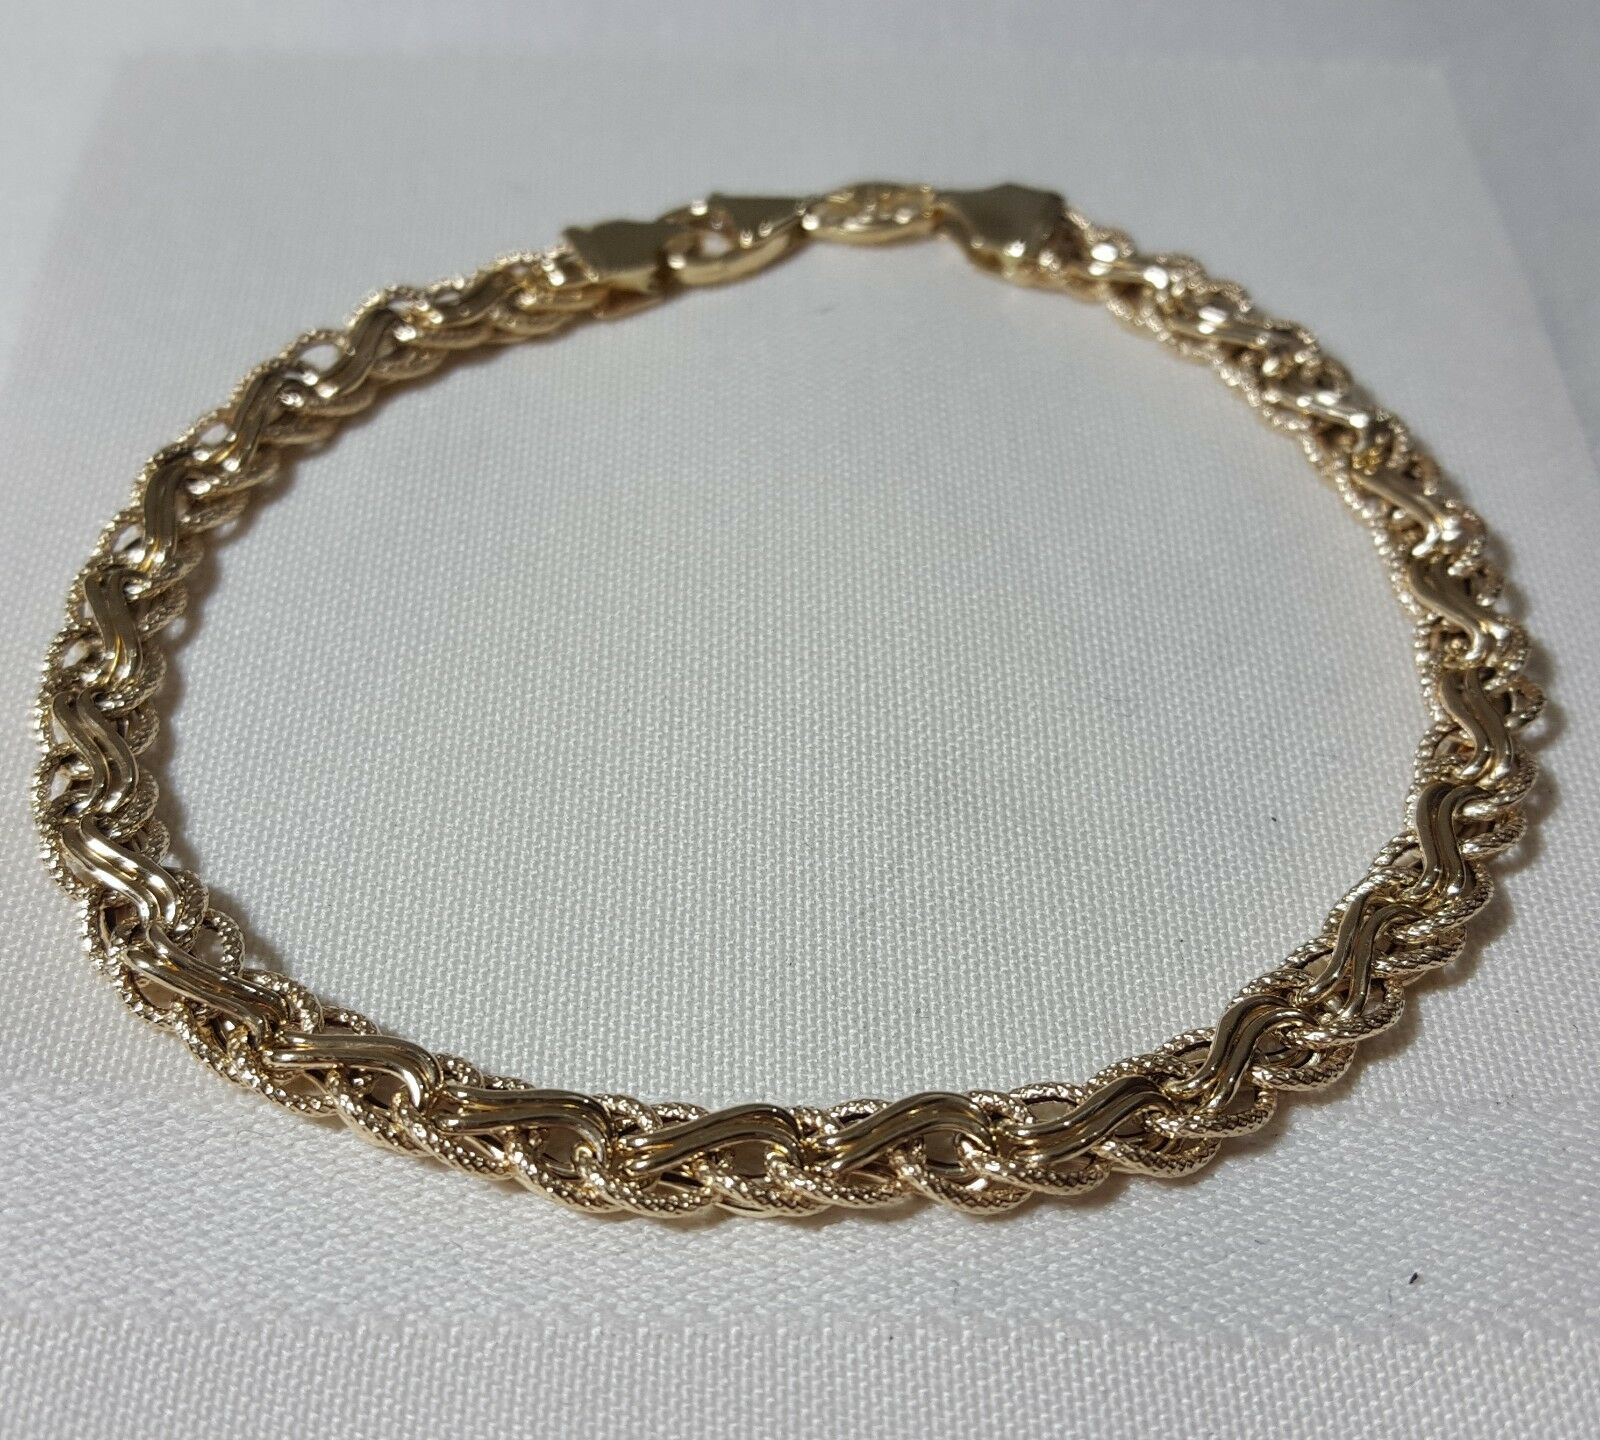 19ed4b4431d18 Bracelet Braided Rope Inch 18 gold 14K 4.5 Yellow Wide 5.5mm Grams ...